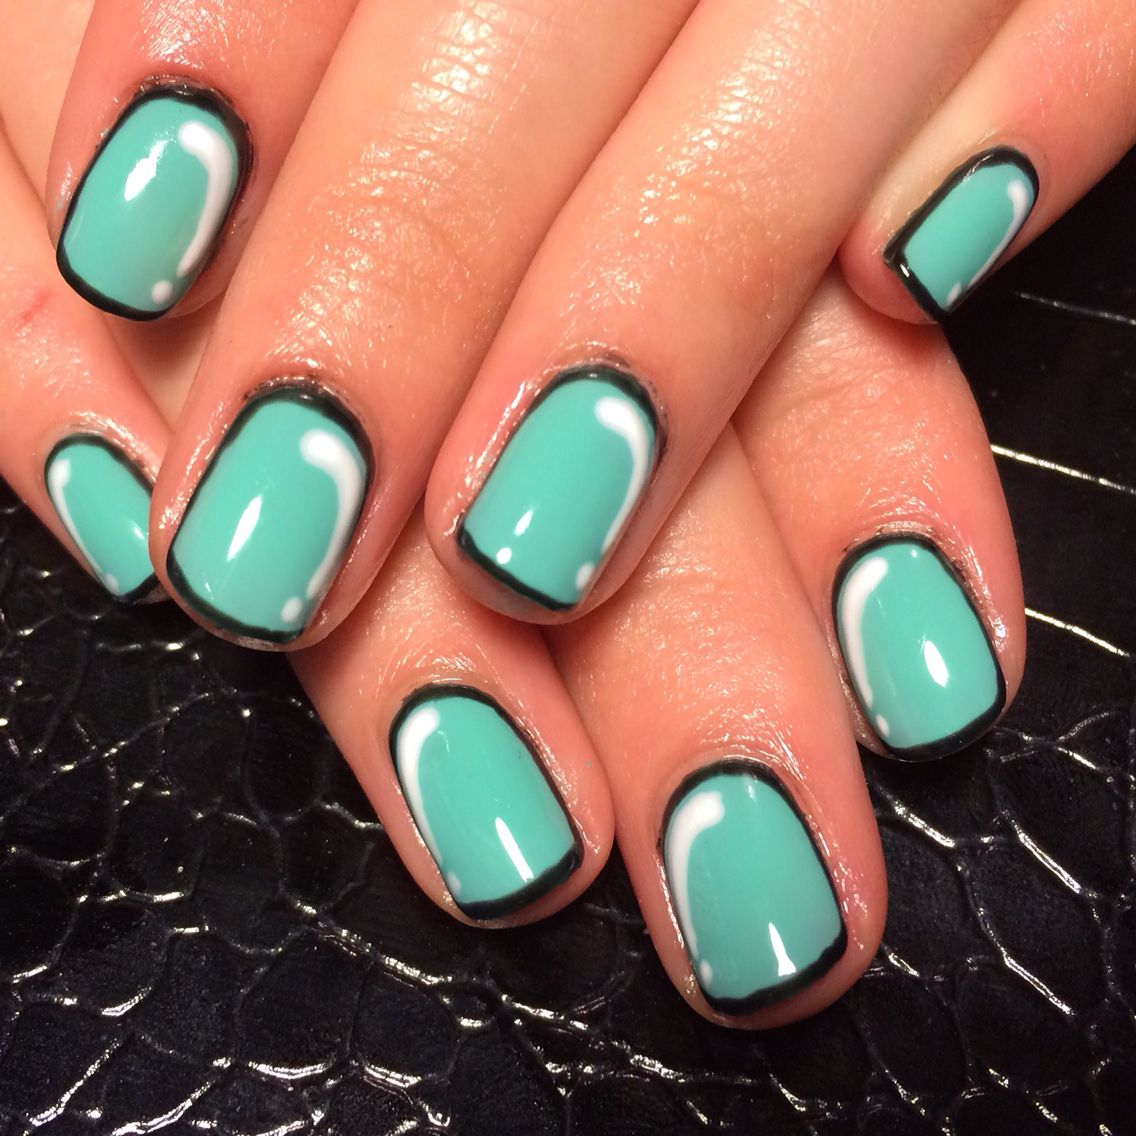 Gelish gel polish nails by Celeste Young | Nails by Celeste Young ...